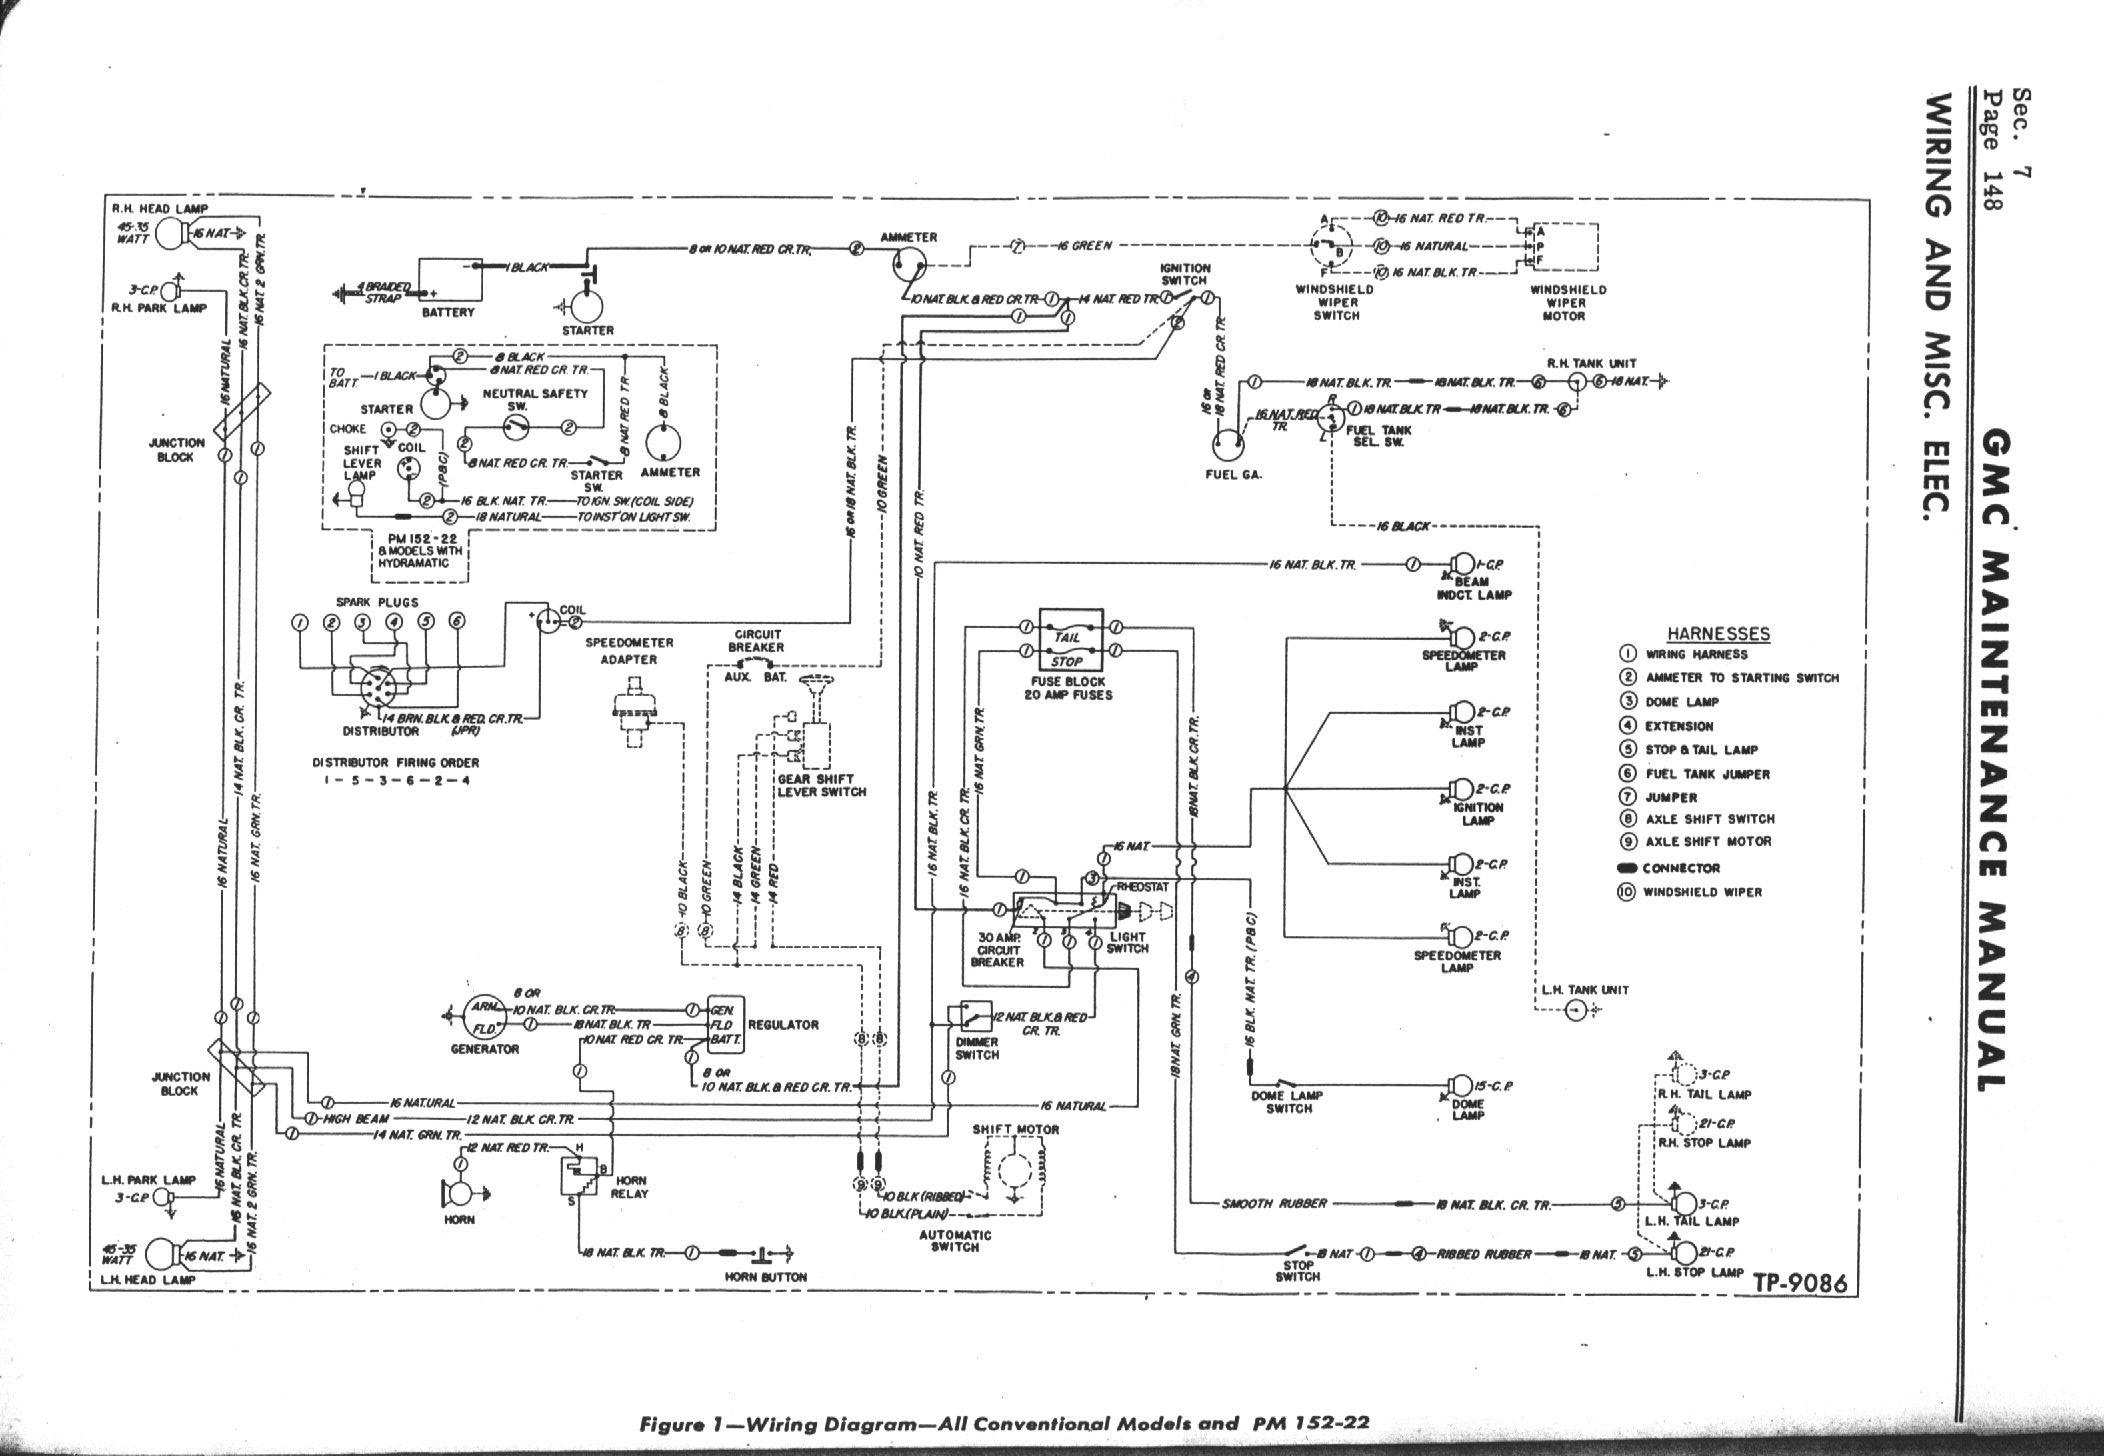 gmc truck wiring diagram gmc free engine image for user 1984 gmc truck  wiring diagrams 1956 gmc pickup wiring diagram